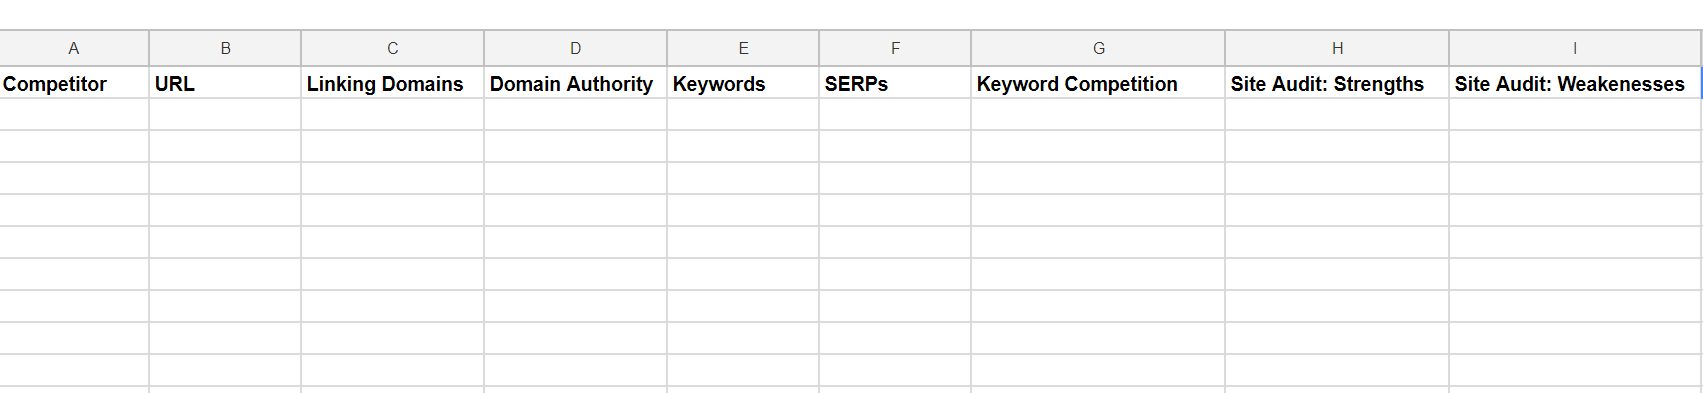 Competitor analysis spreadsheet for financial marketing strategy